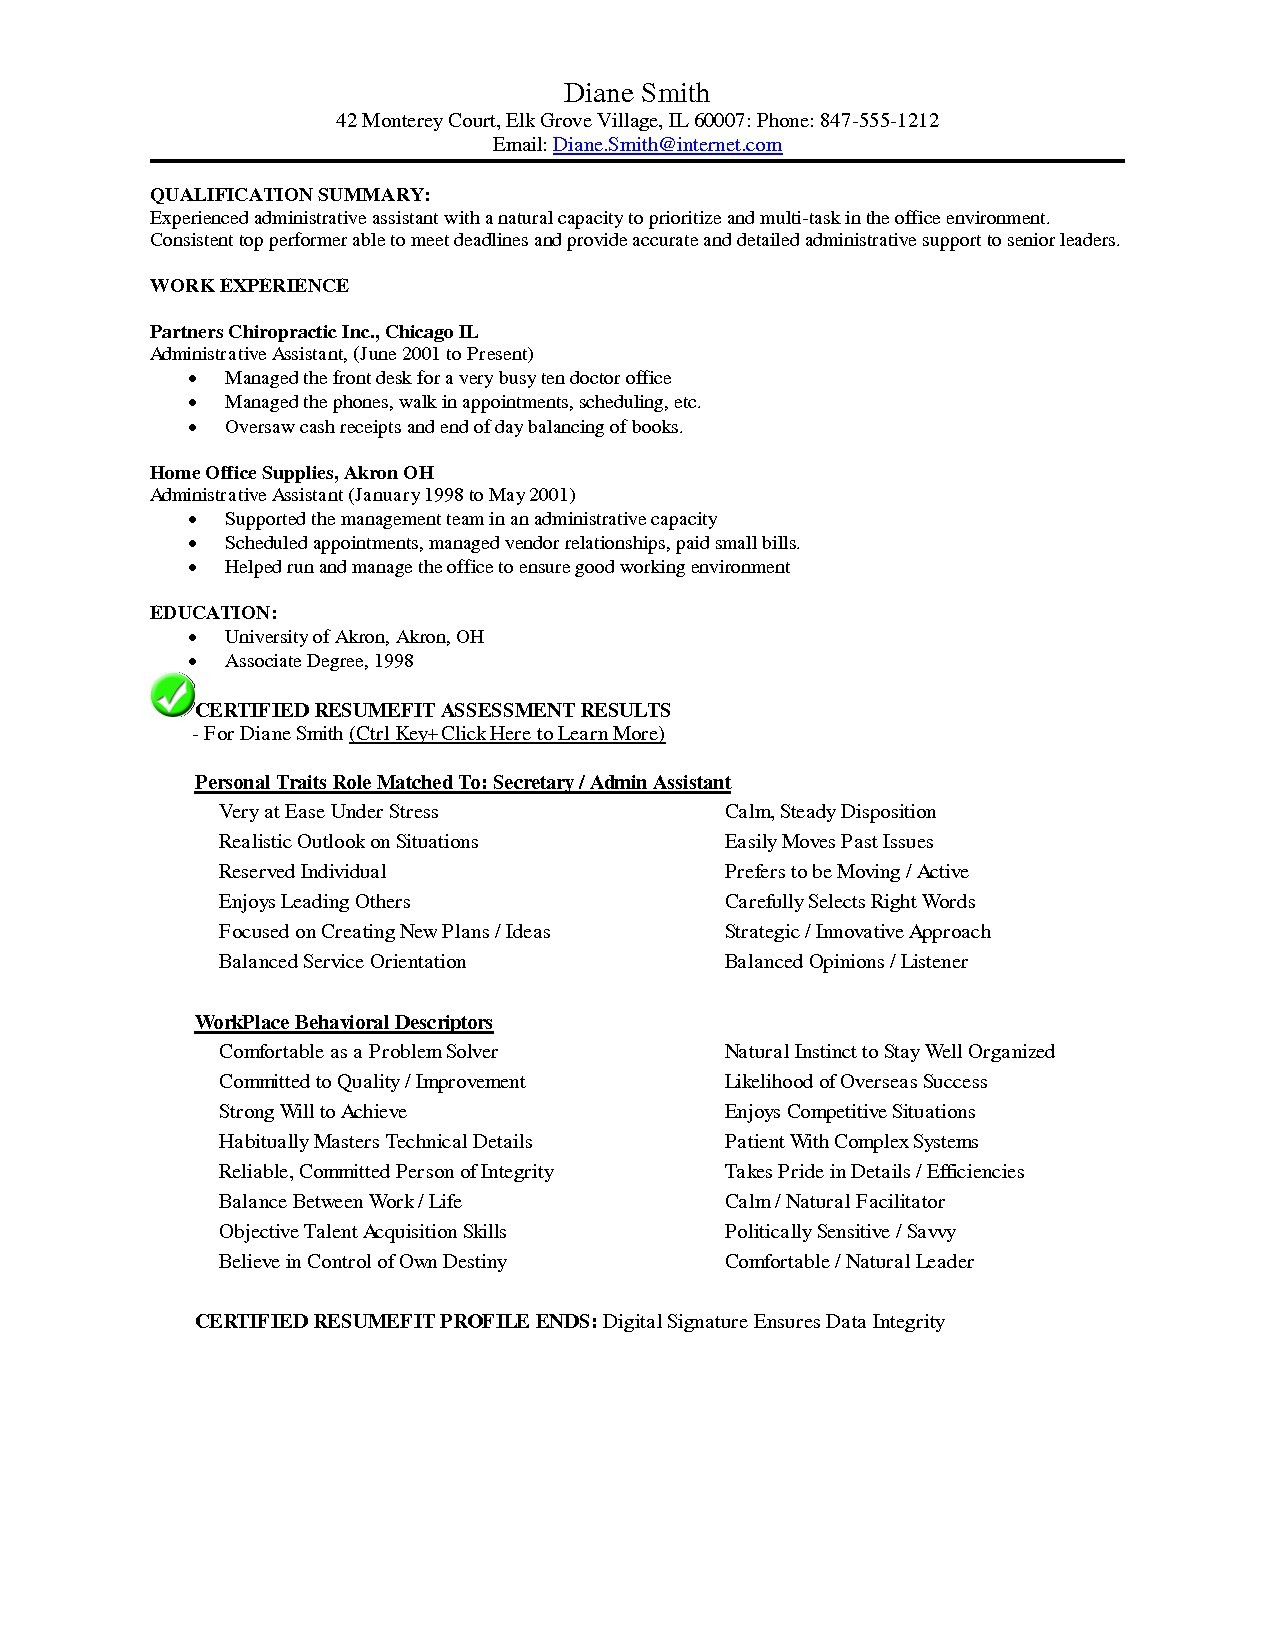 Nurse Resume Template Microsoft Word - 23 Resume Templates for Nursing Jobs